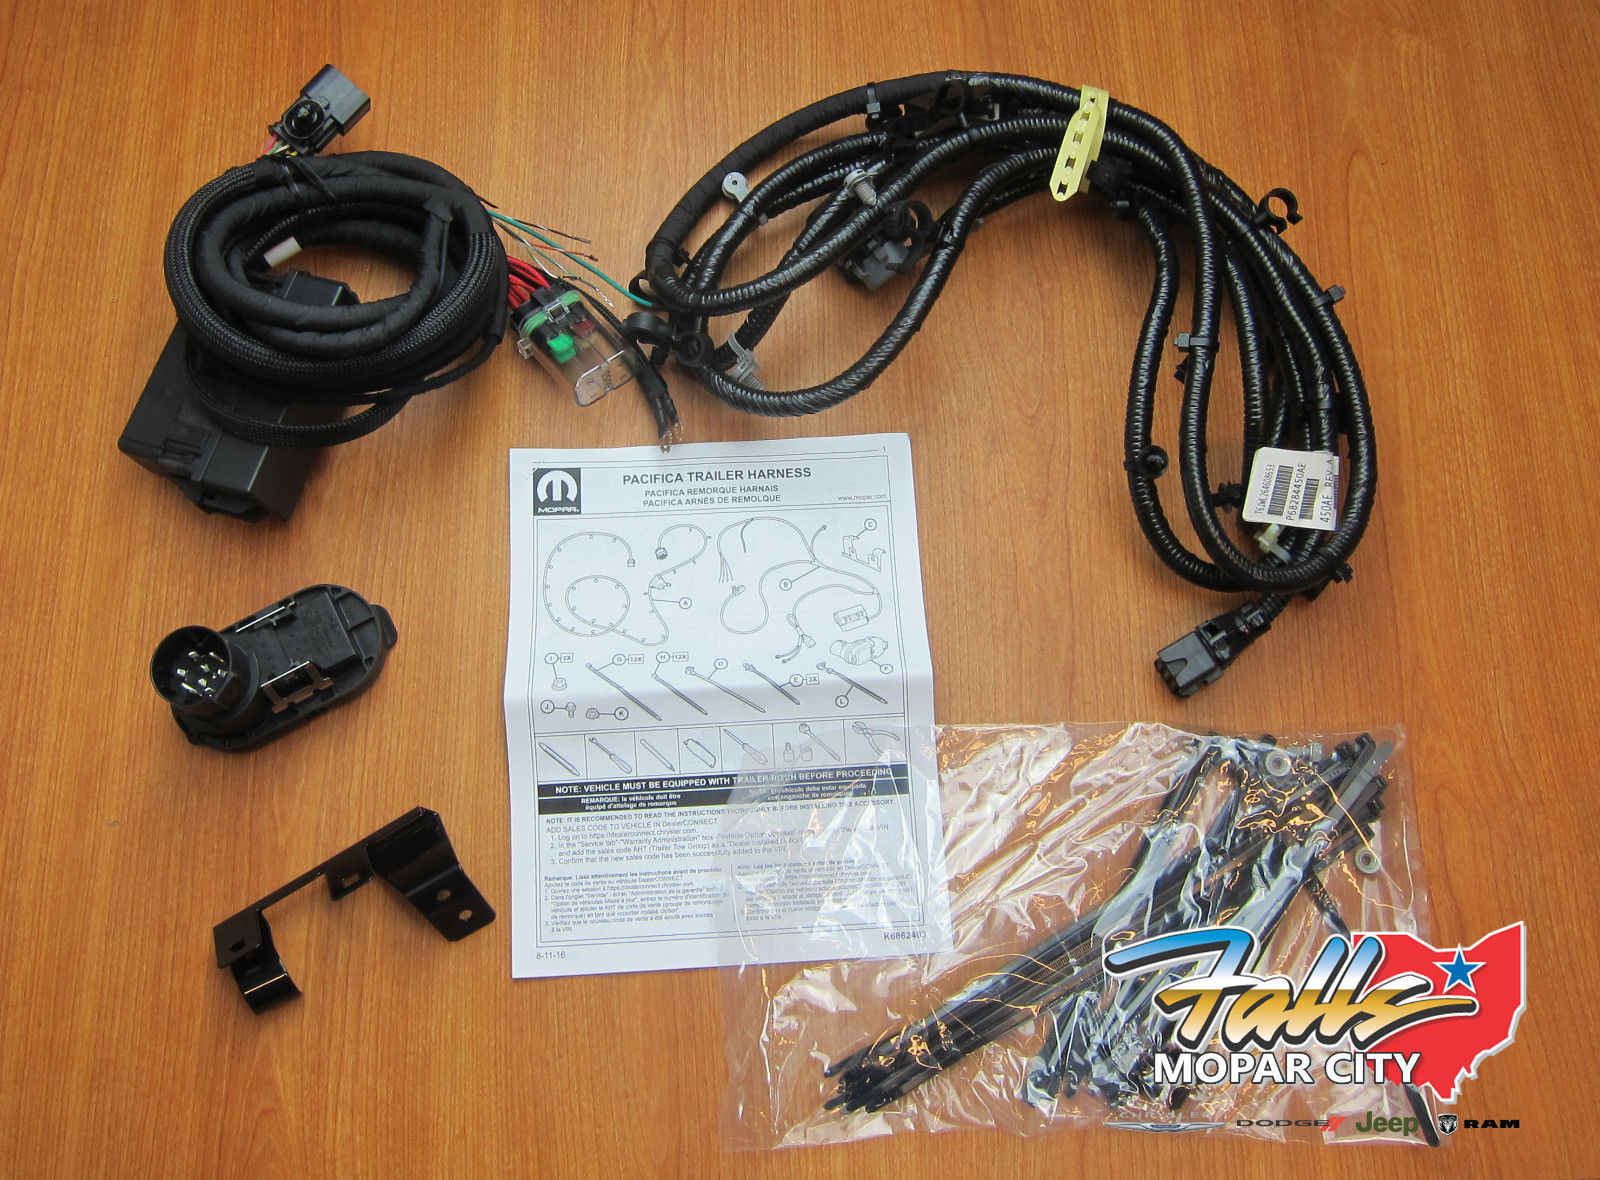 2017-2018 Chrysler Pacifica Trailer Tow Hitch Wiring Harness Kit MOPAR on mopar tachometer, mopar vacuum pump, mopar headlight, mopar spark plugs, mopar intake, mopar battery, mopar master cylinder, mopar steering column, mopar ignition system, mopar seats, mopar hood, mopar parts, mopar motor mounts, mopar mirrors, mopar air cleaner, mopar turn signal switch, mopar power steering pump, mopar engines, mopar oil filter, mopar wheels,